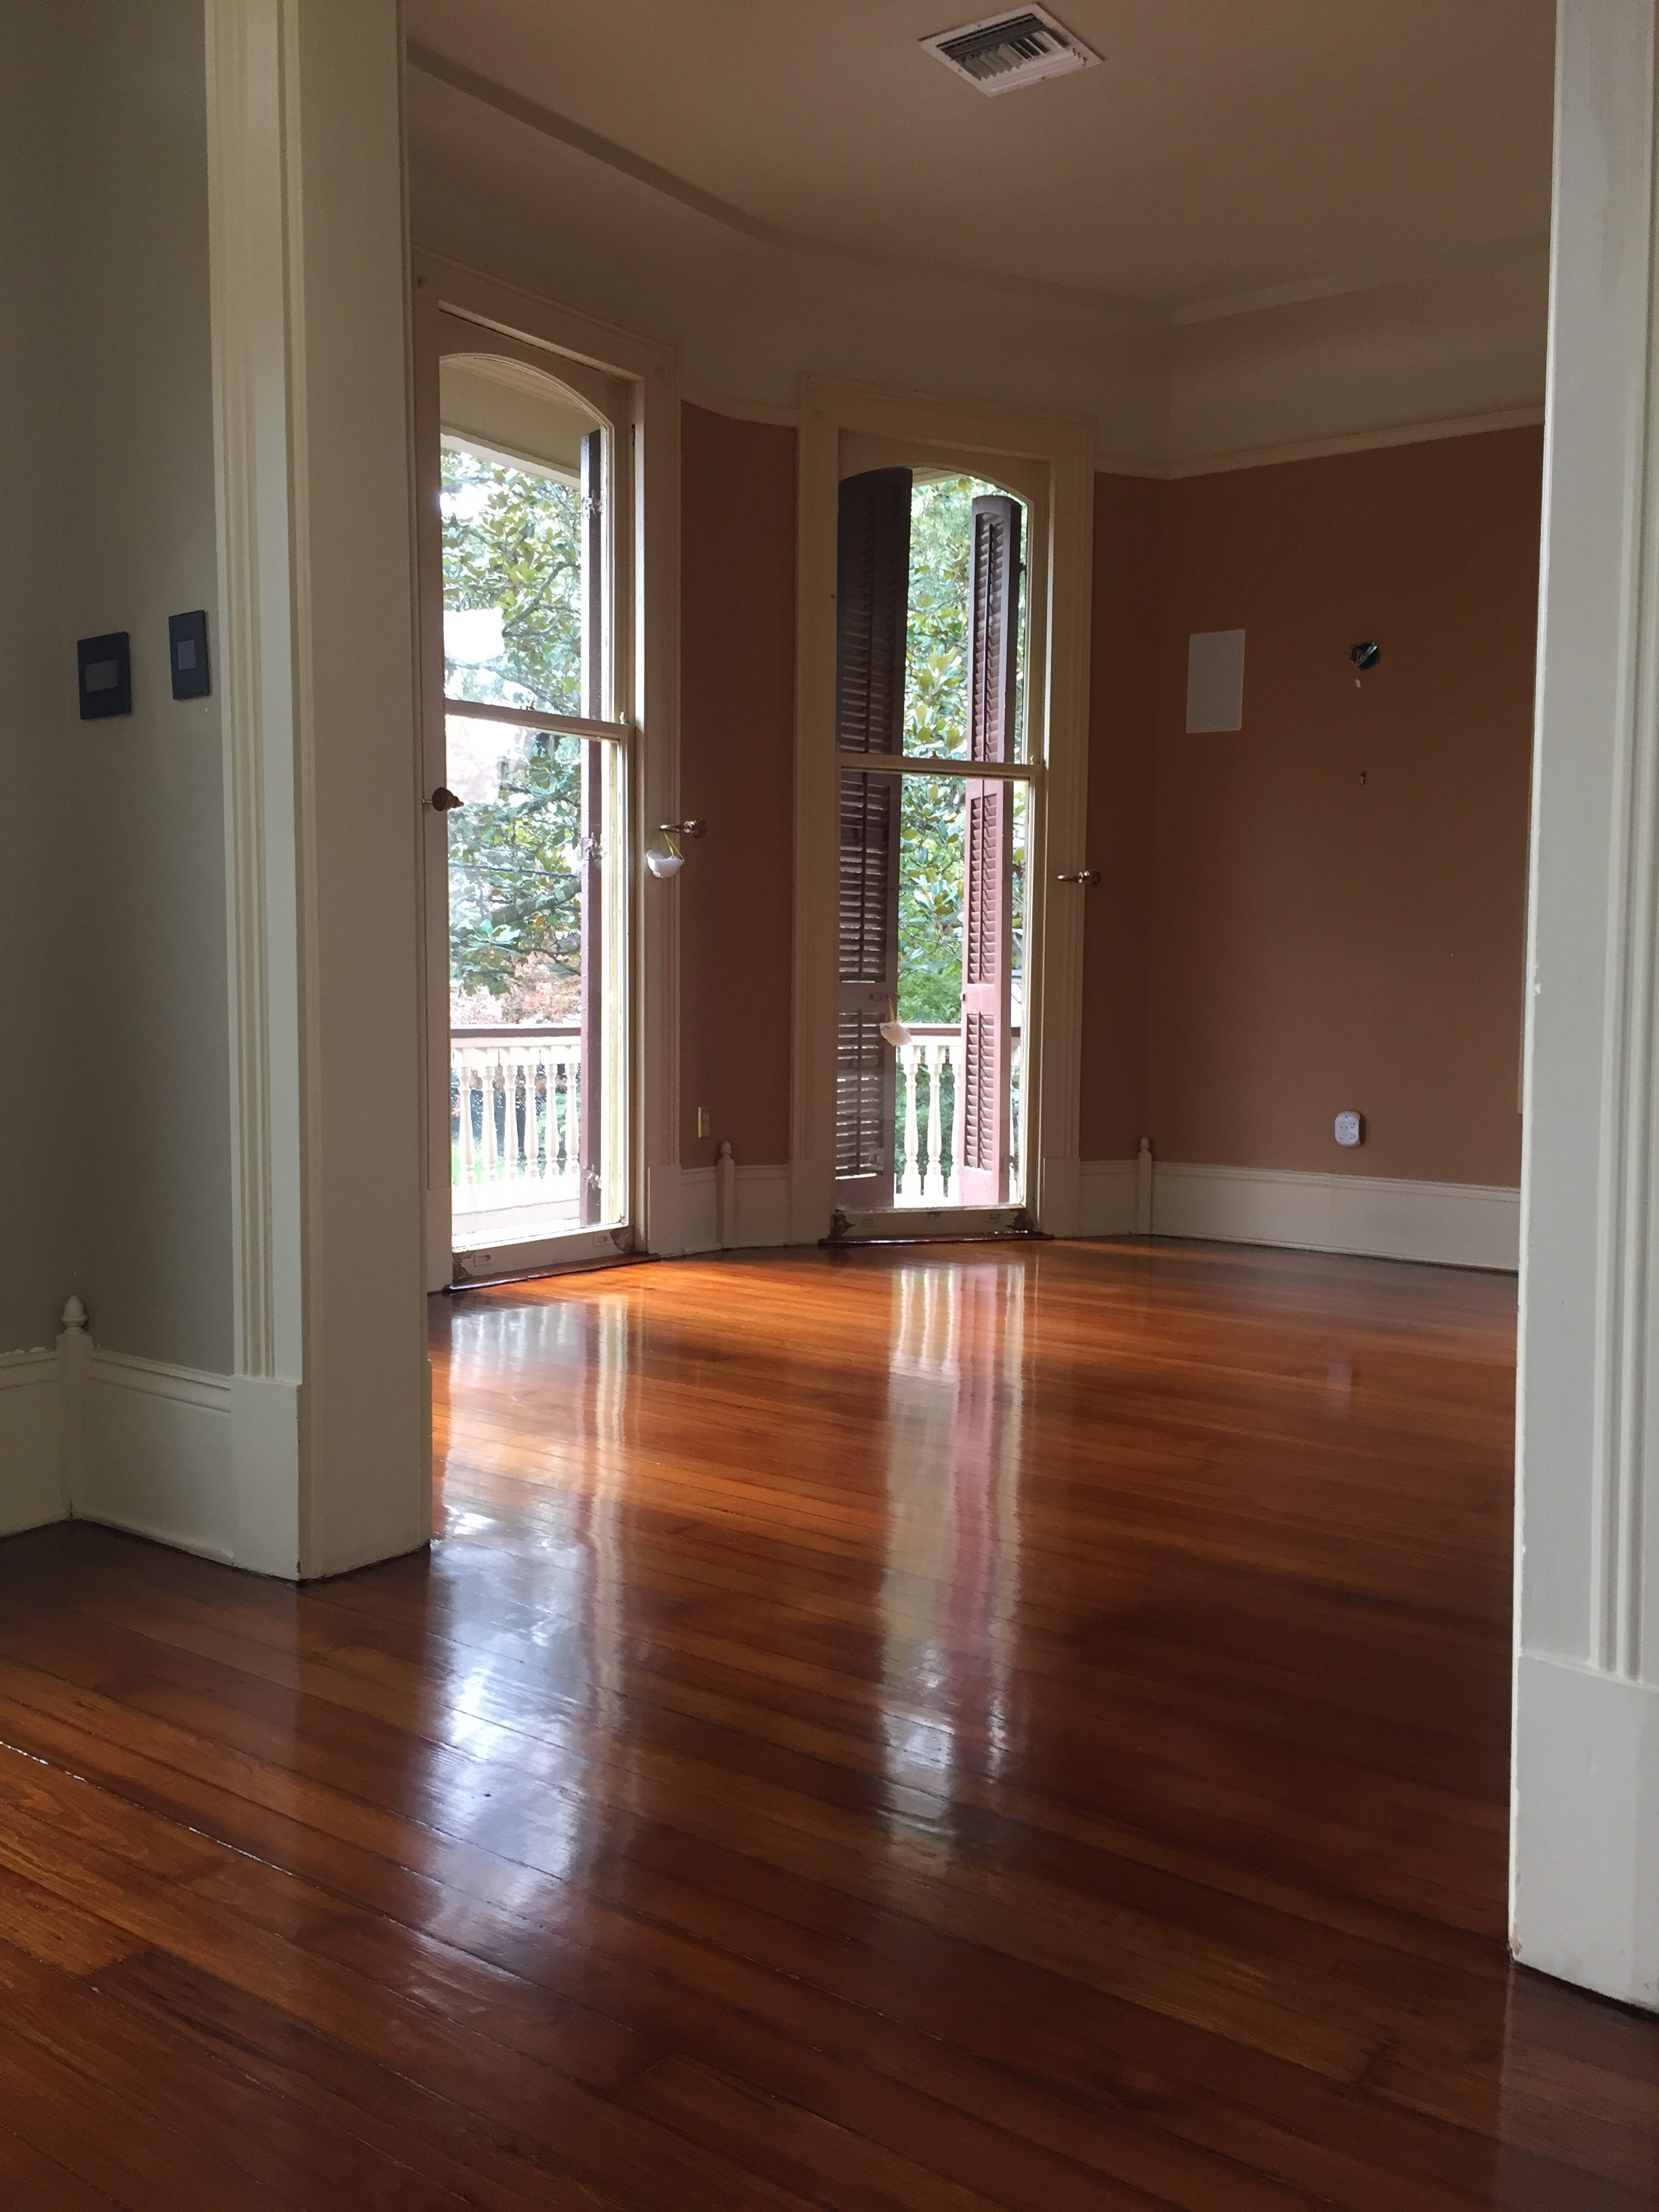 These refinished pine floors have a glossy finish.